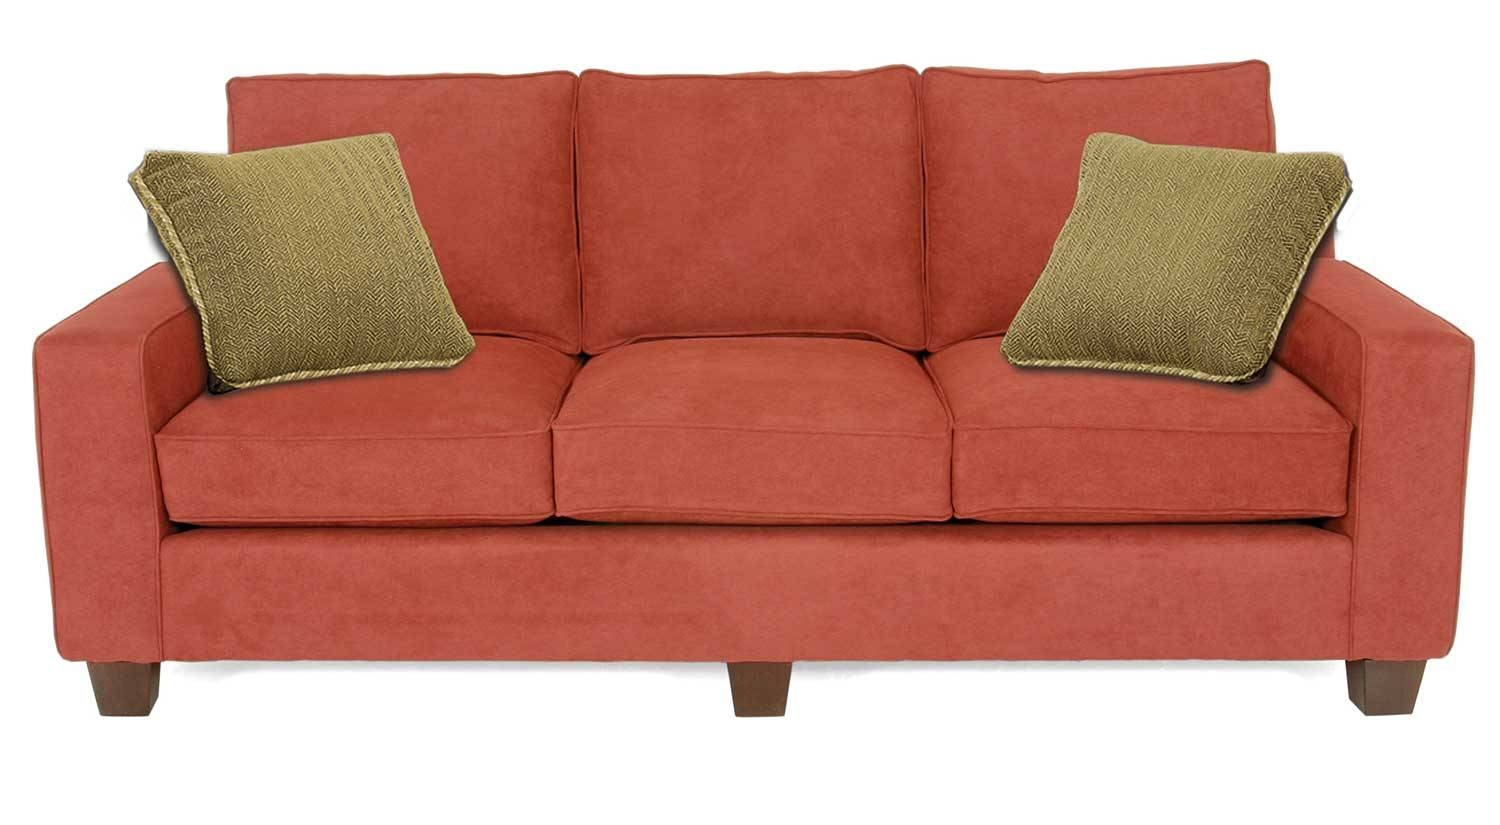 Circle Furniture - Metro Sofa | Modern Designer Sofa | Circle within Circle Sofas (Image 4 of 25)